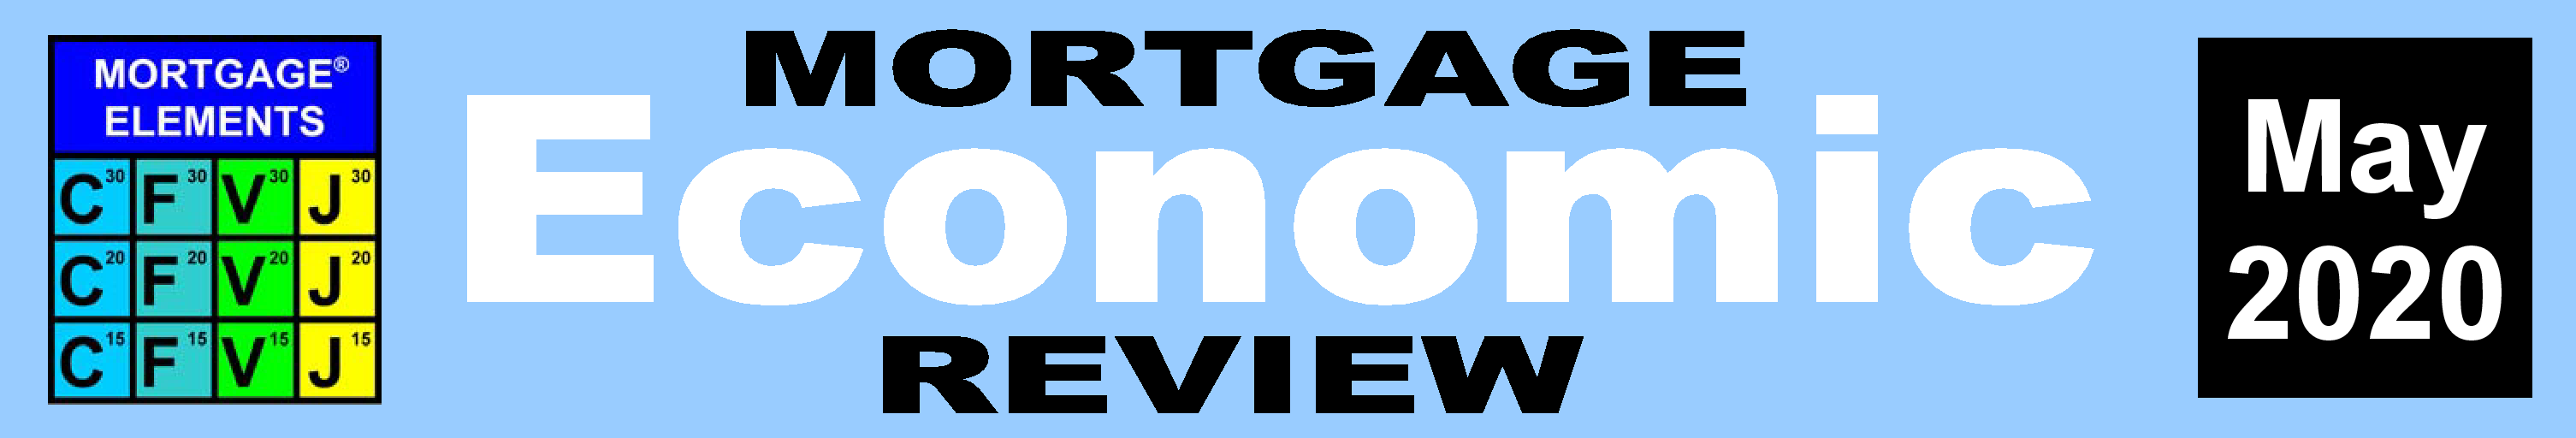 Mortgage-Economic-Review-May-2020